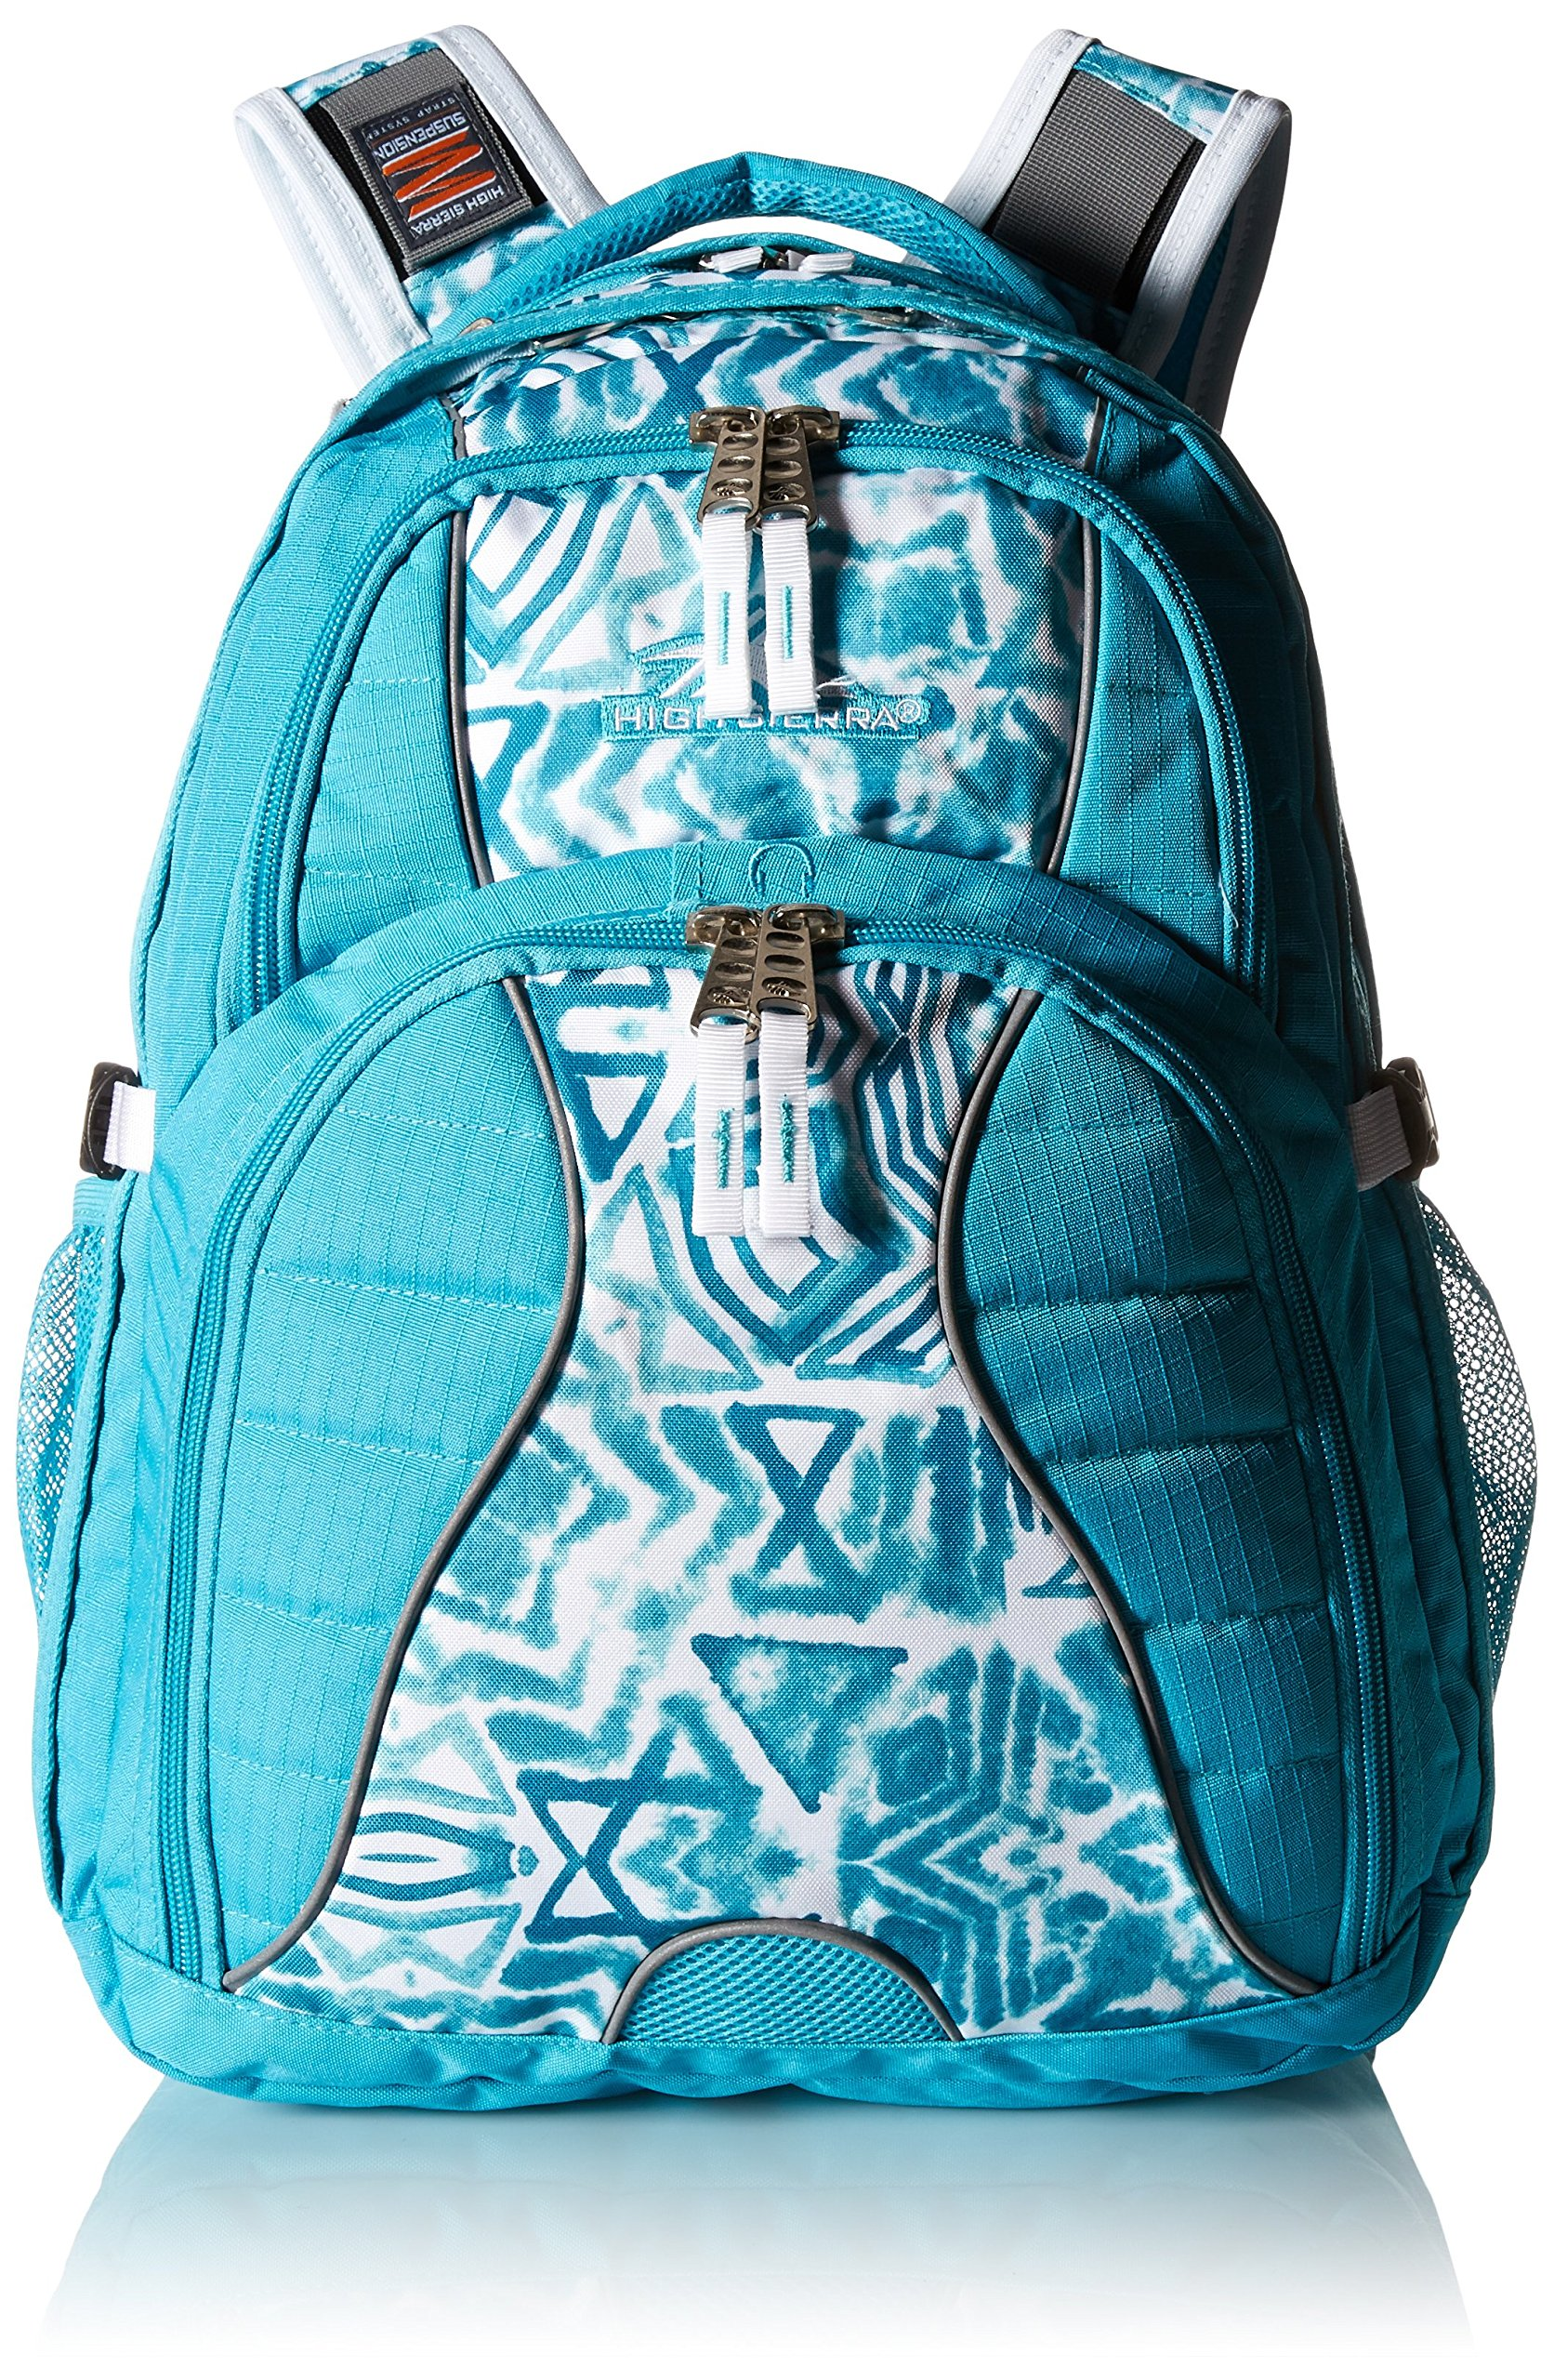 High Sierra Swerve Laptop Backpack, Tropic Teal/Teal Shibori/White by High Sierra